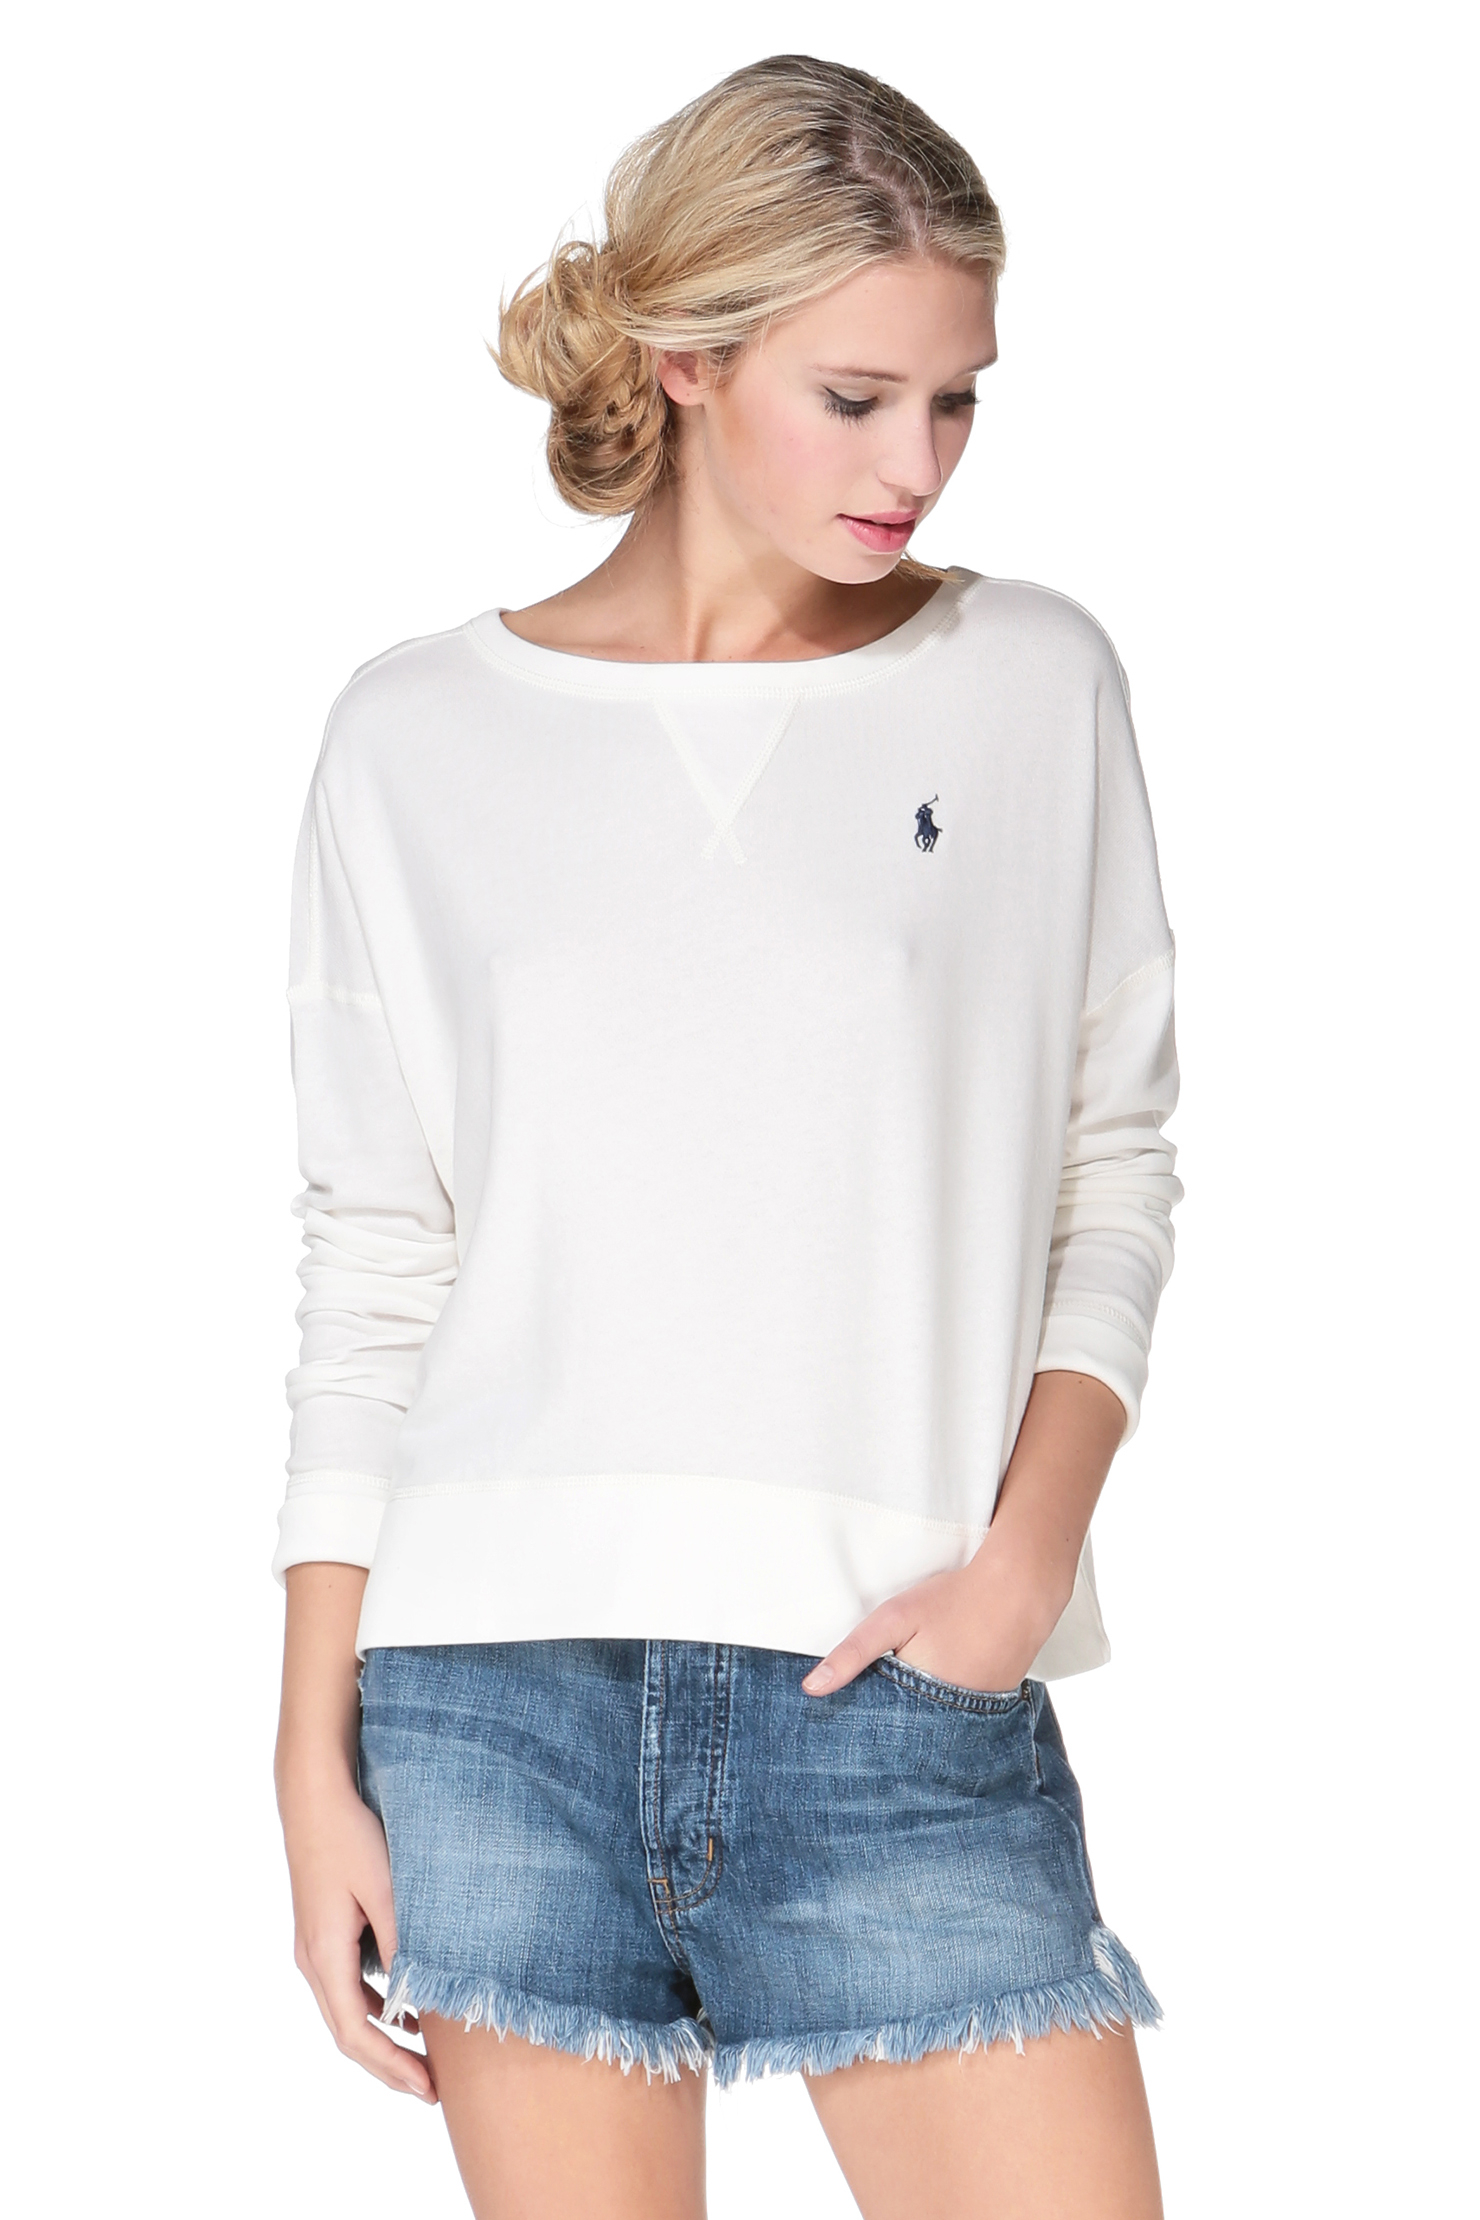 polo ralph lauren sweatshirt in white lyst. Black Bedroom Furniture Sets. Home Design Ideas